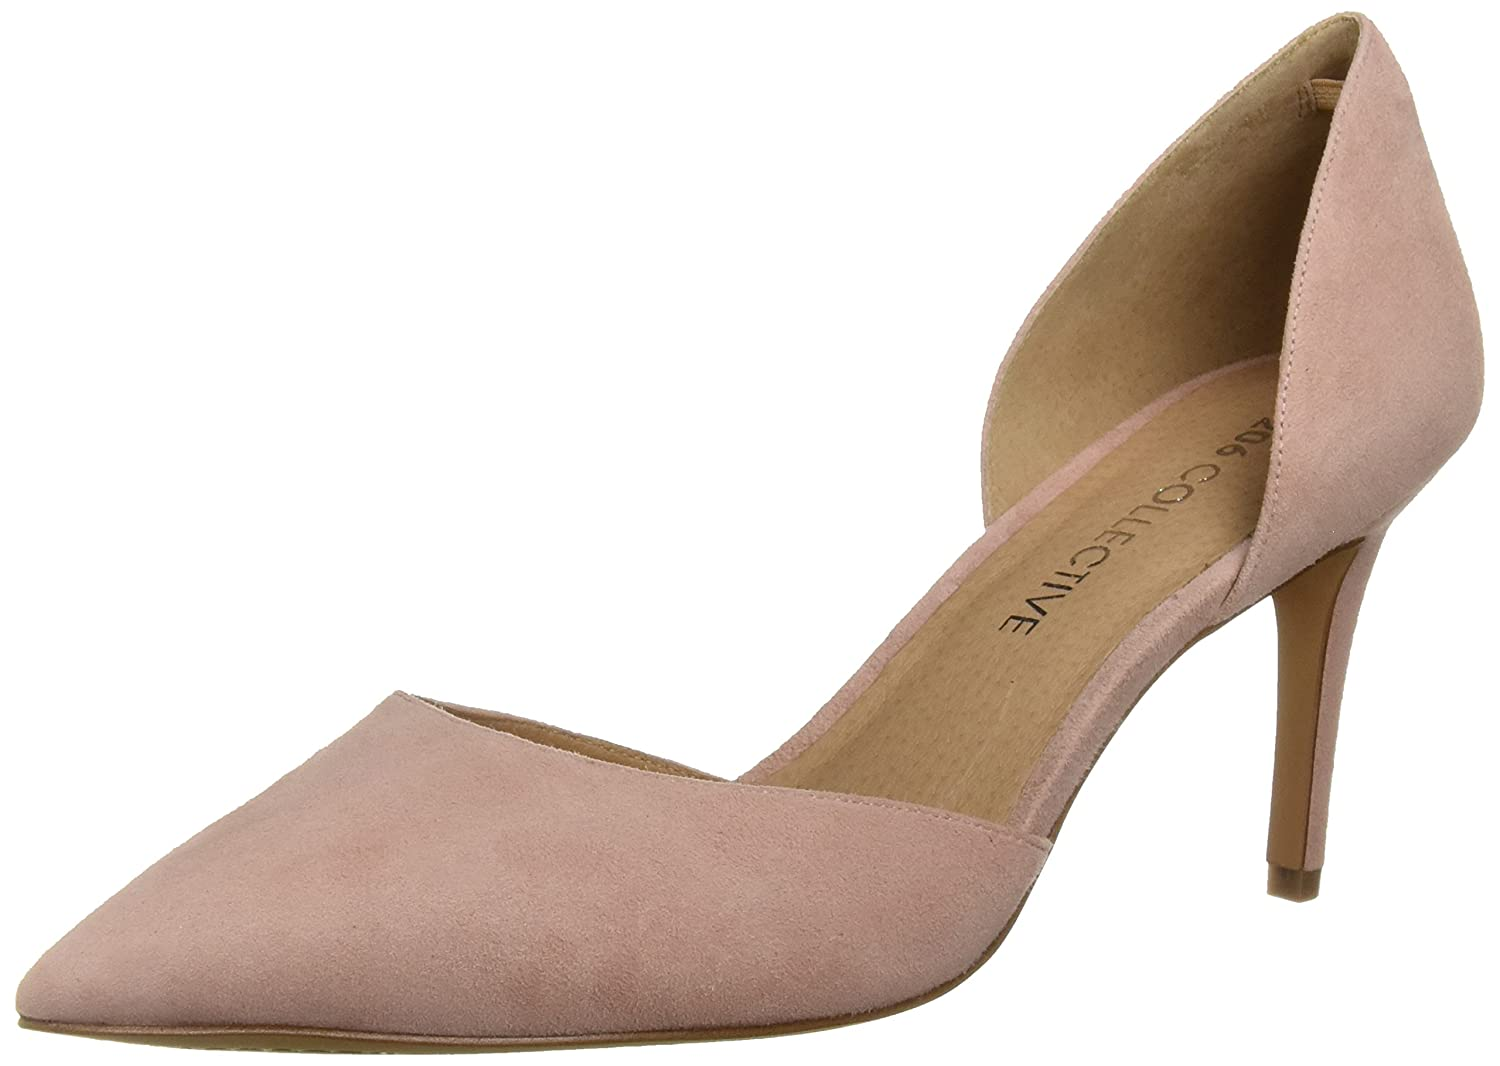 206 Collective Women's Adelaide D'Orsay Dress Pump B07895SMK7 11 B(M) US|Rose Suede